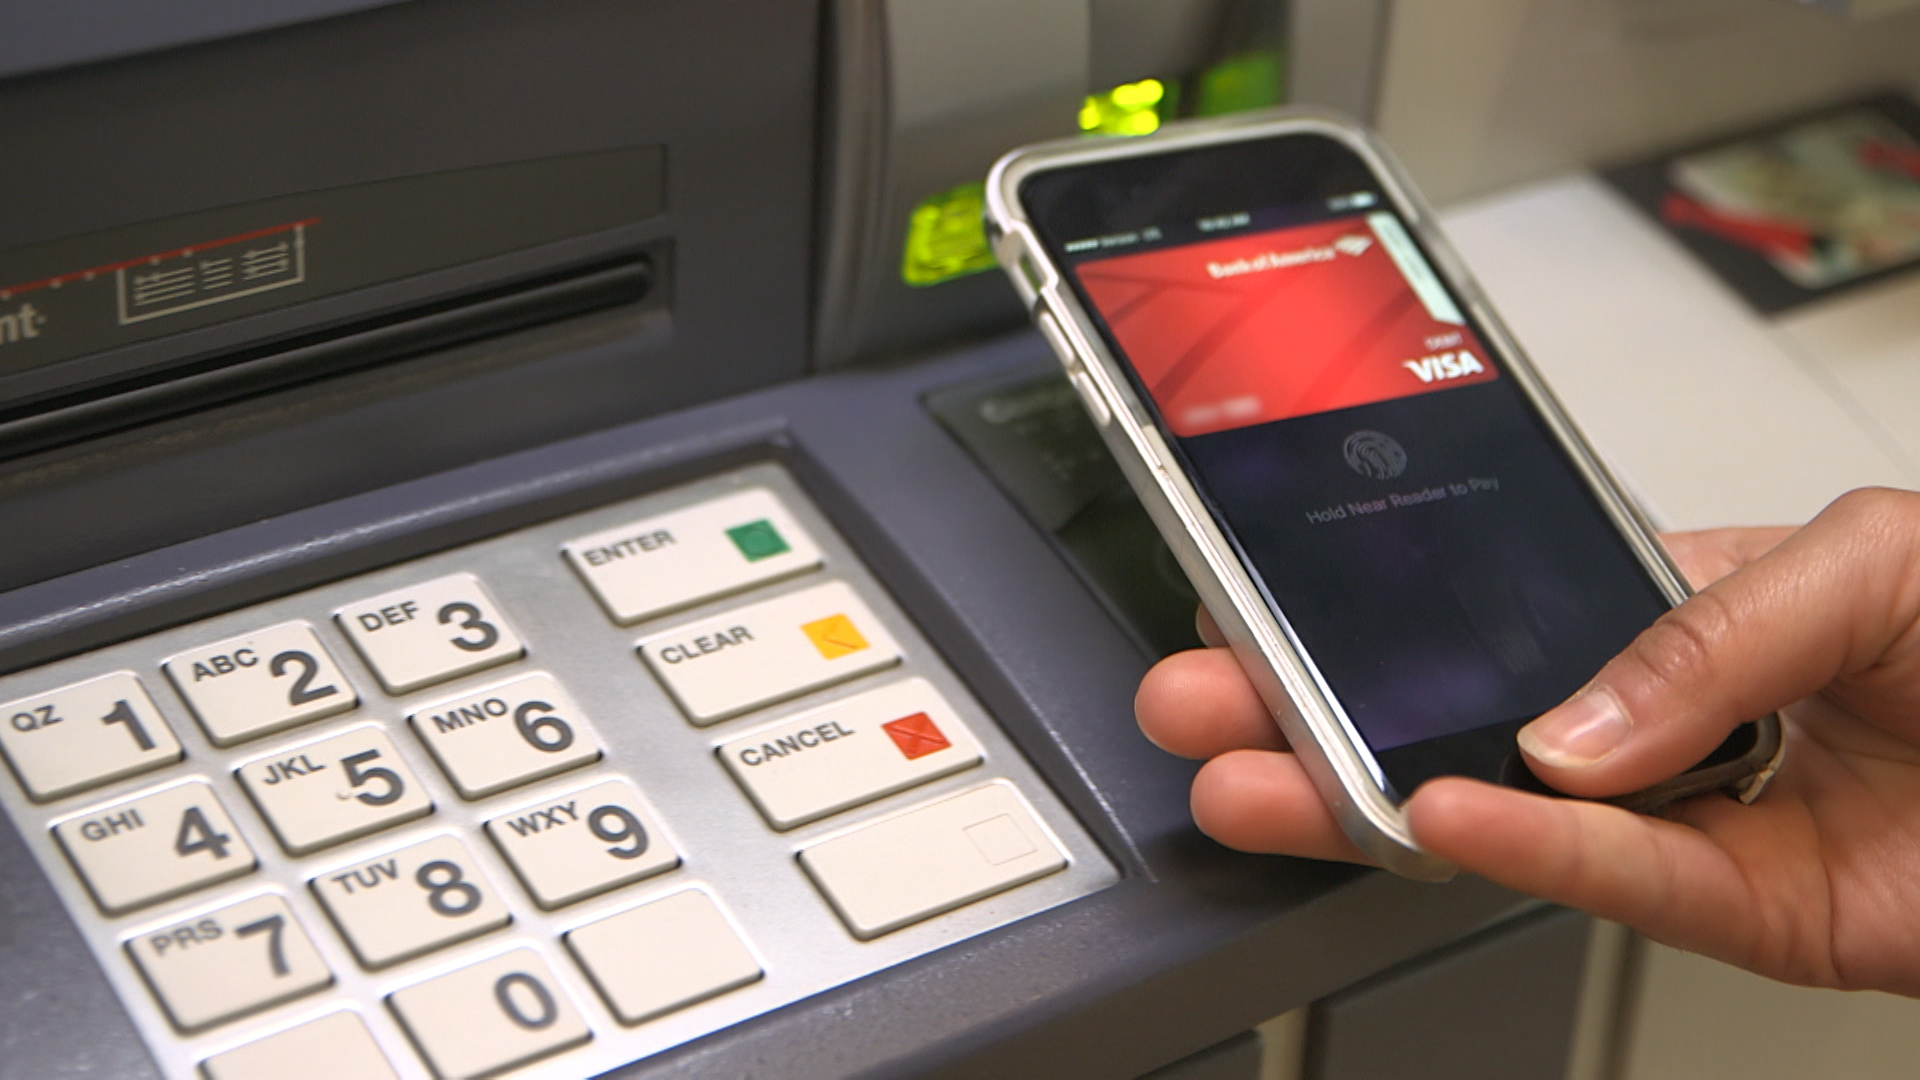 Video: Use your phone instead of a card at the ATM